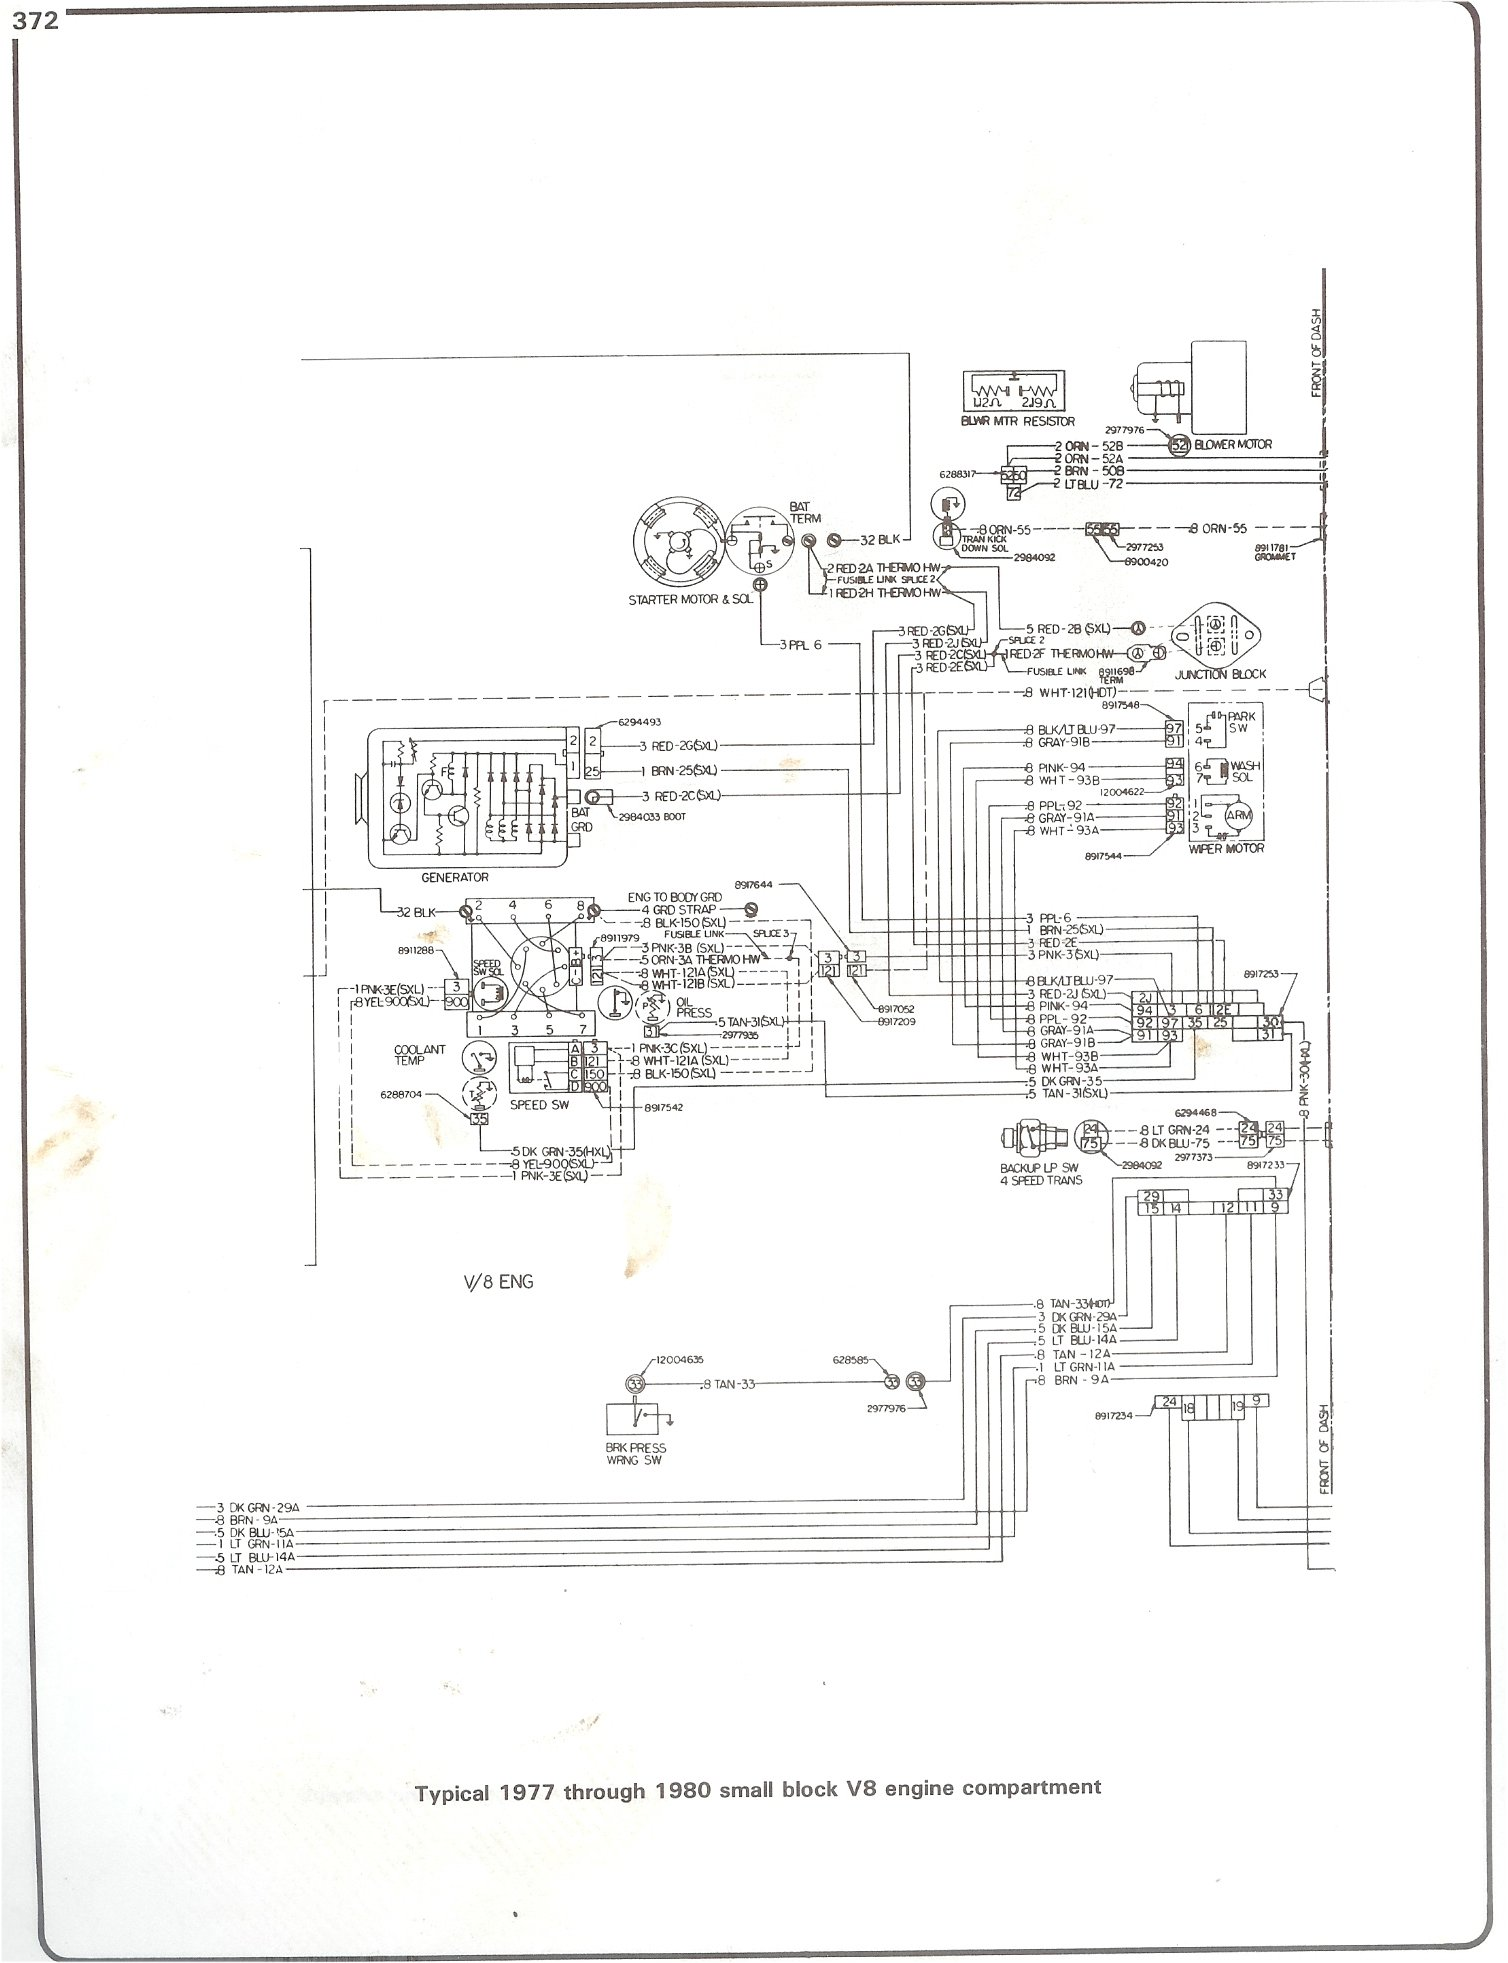 C1B56 87 Chevy Fuse Box Diagram | Wiring Resources on 85 chevy truck fuse box, 89 chevy s 10 fuse box, 79 chevy truck fuse box,